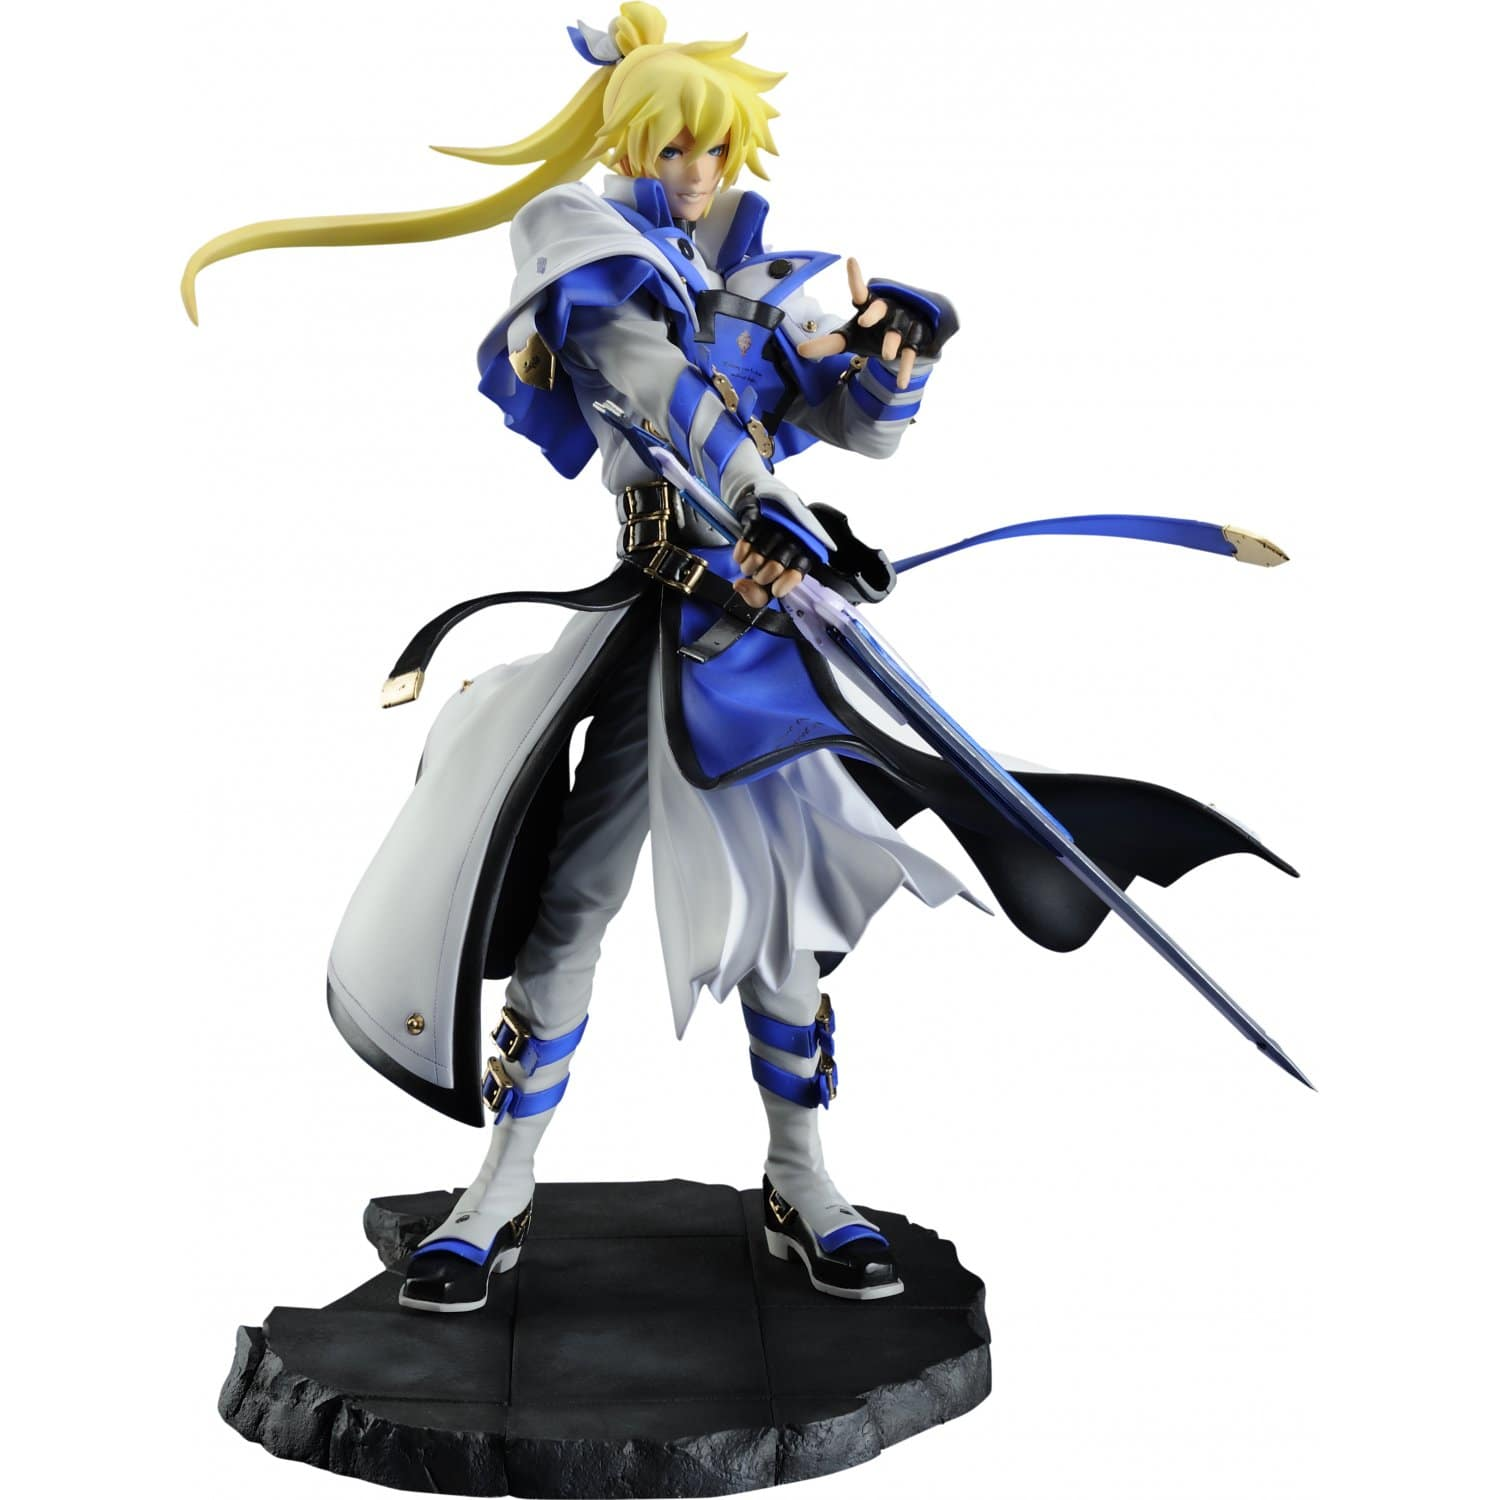 Guilty Gear: Ky Kiske For mobile